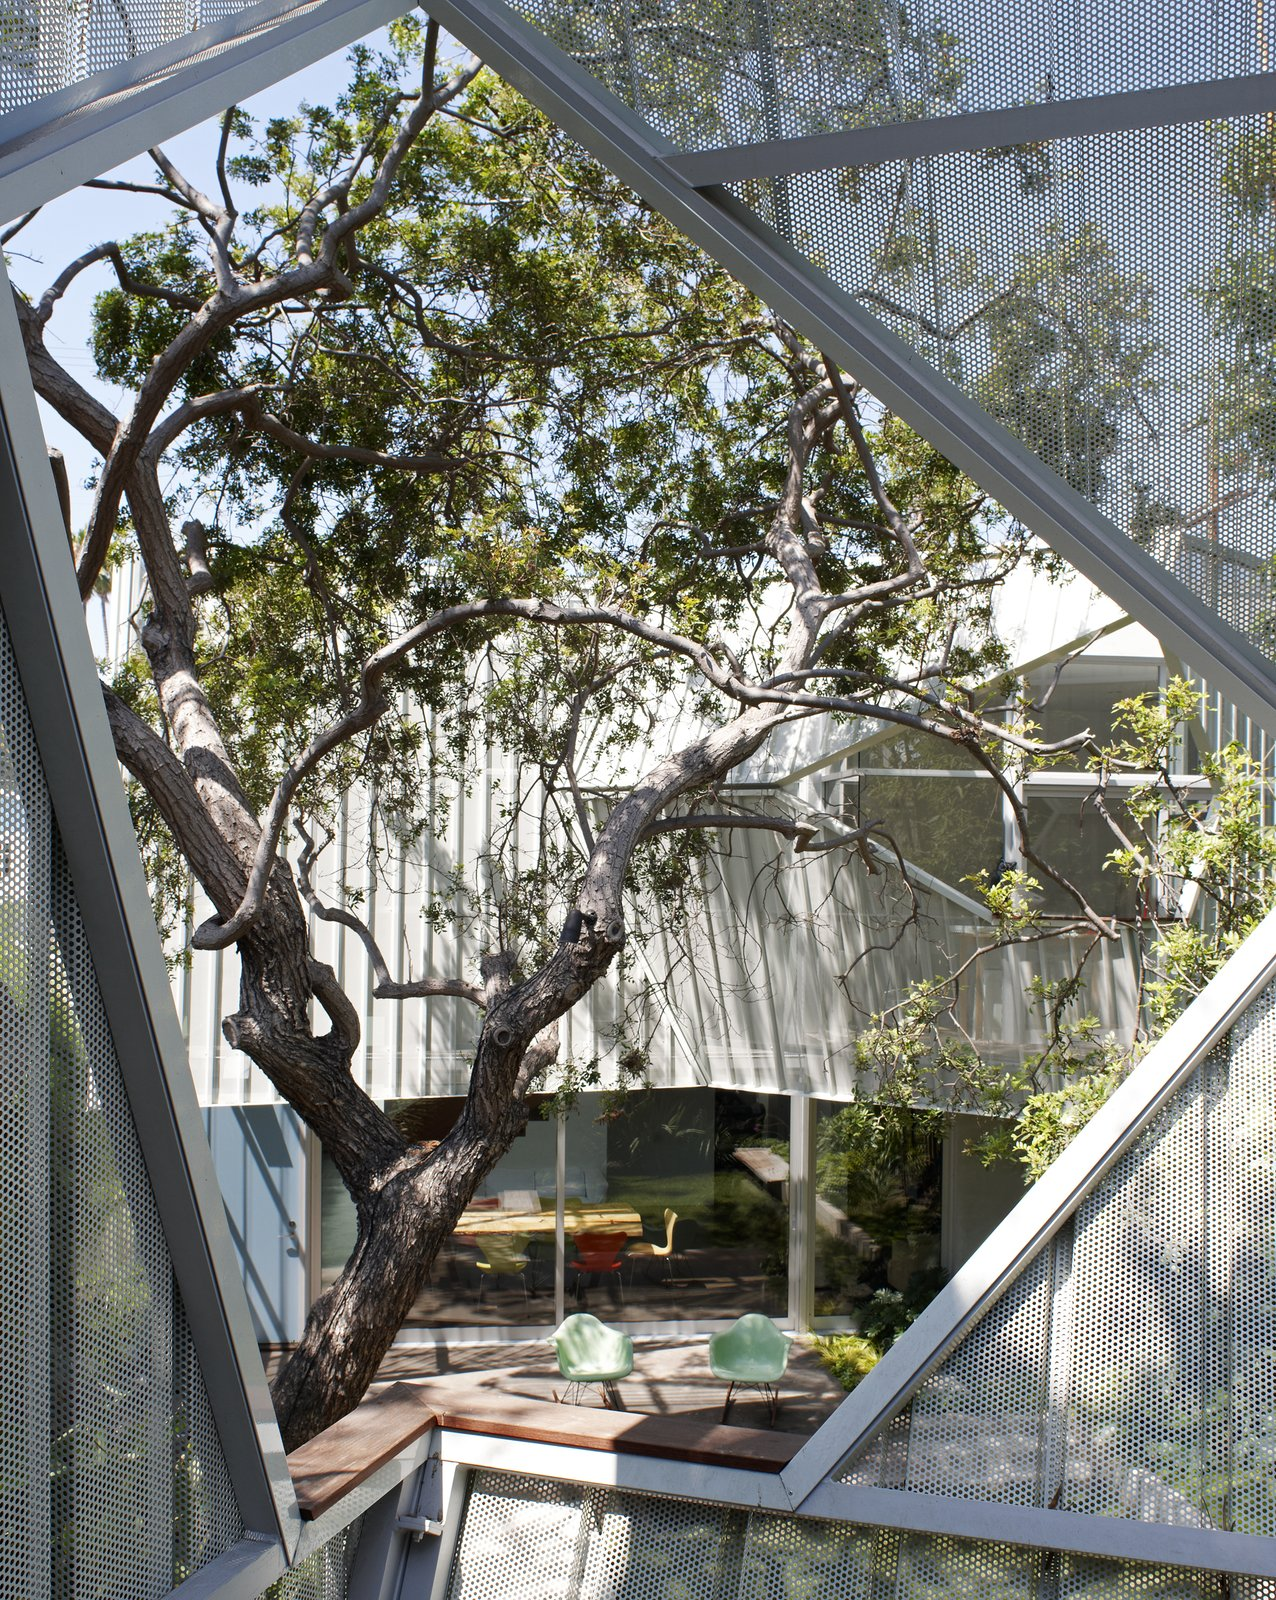 #outside #exterior #outdoor #geometry #Eames #rockingchair #tree #landscape #color #aluminum #metal #eco #green #sustainable #Venice #California #KevinDalyArchitects  Venice Residence by Kevin Daly Architects